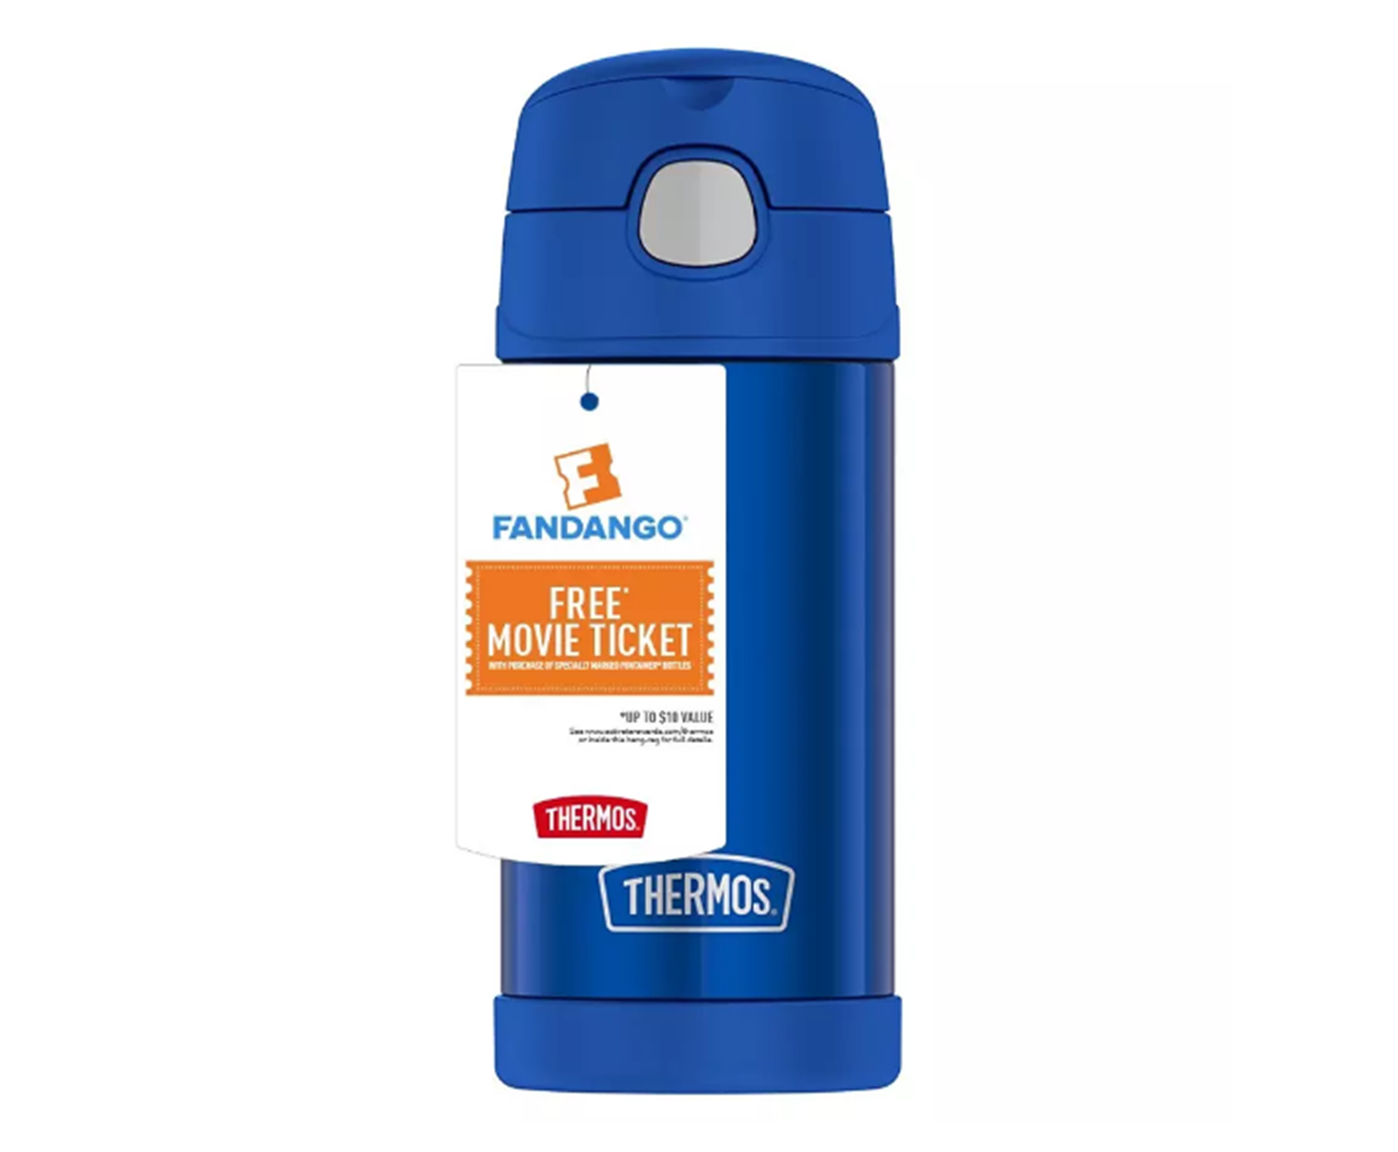 Walgreen's – Thermos Kids Funtainer Hydration Bottle With $10 Free Fandango Movie Ticket Only $9.99 + Free Store Pickup!